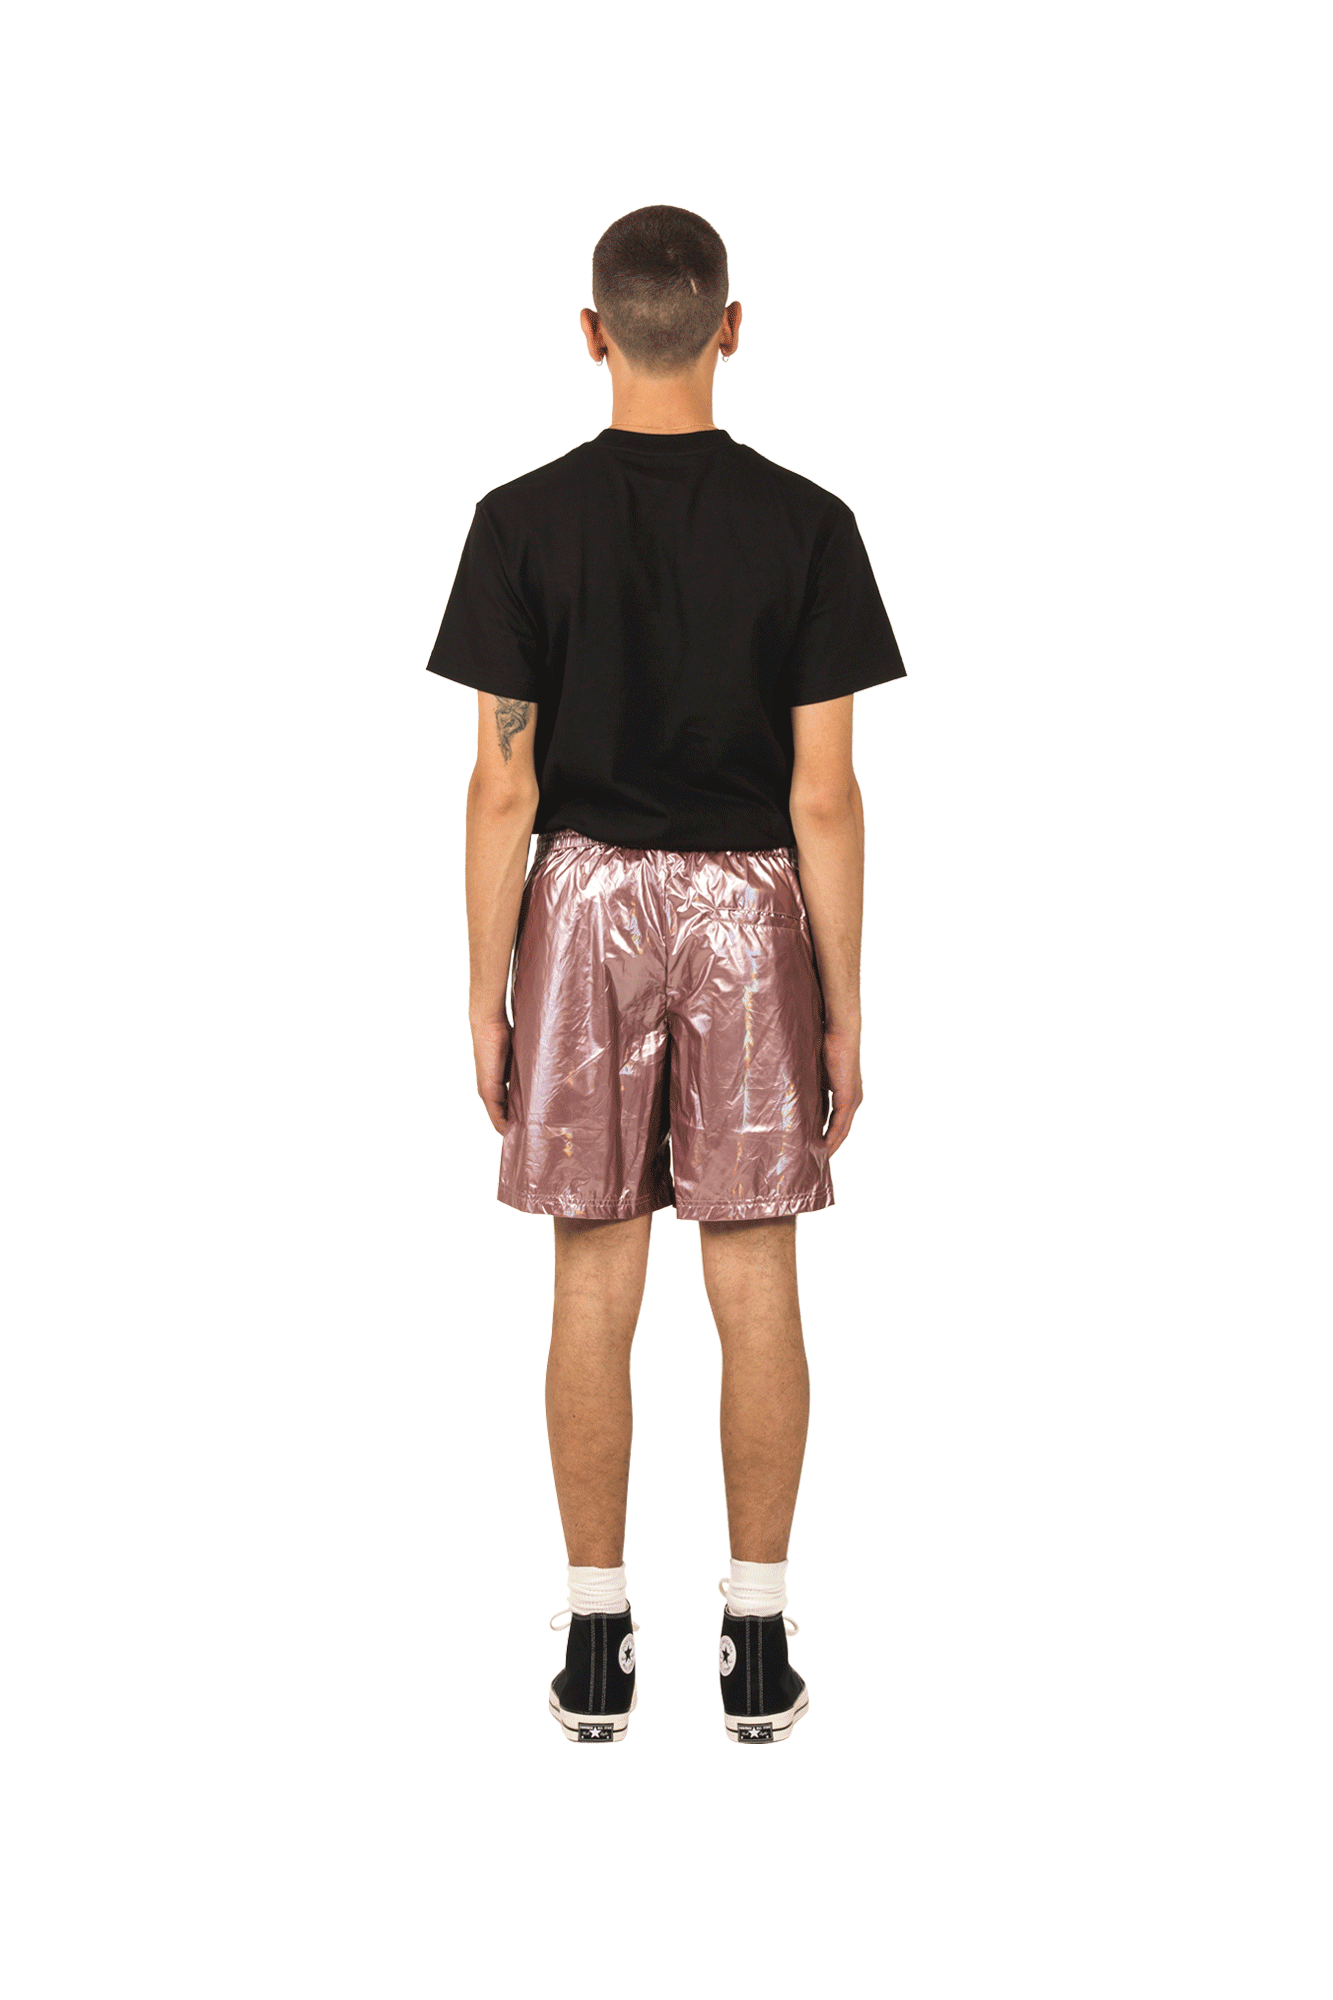 Pleasures Pantaloni corti Liquid Metallic Shorts Rosa P19S105007#050#PINK#S - One Block Down